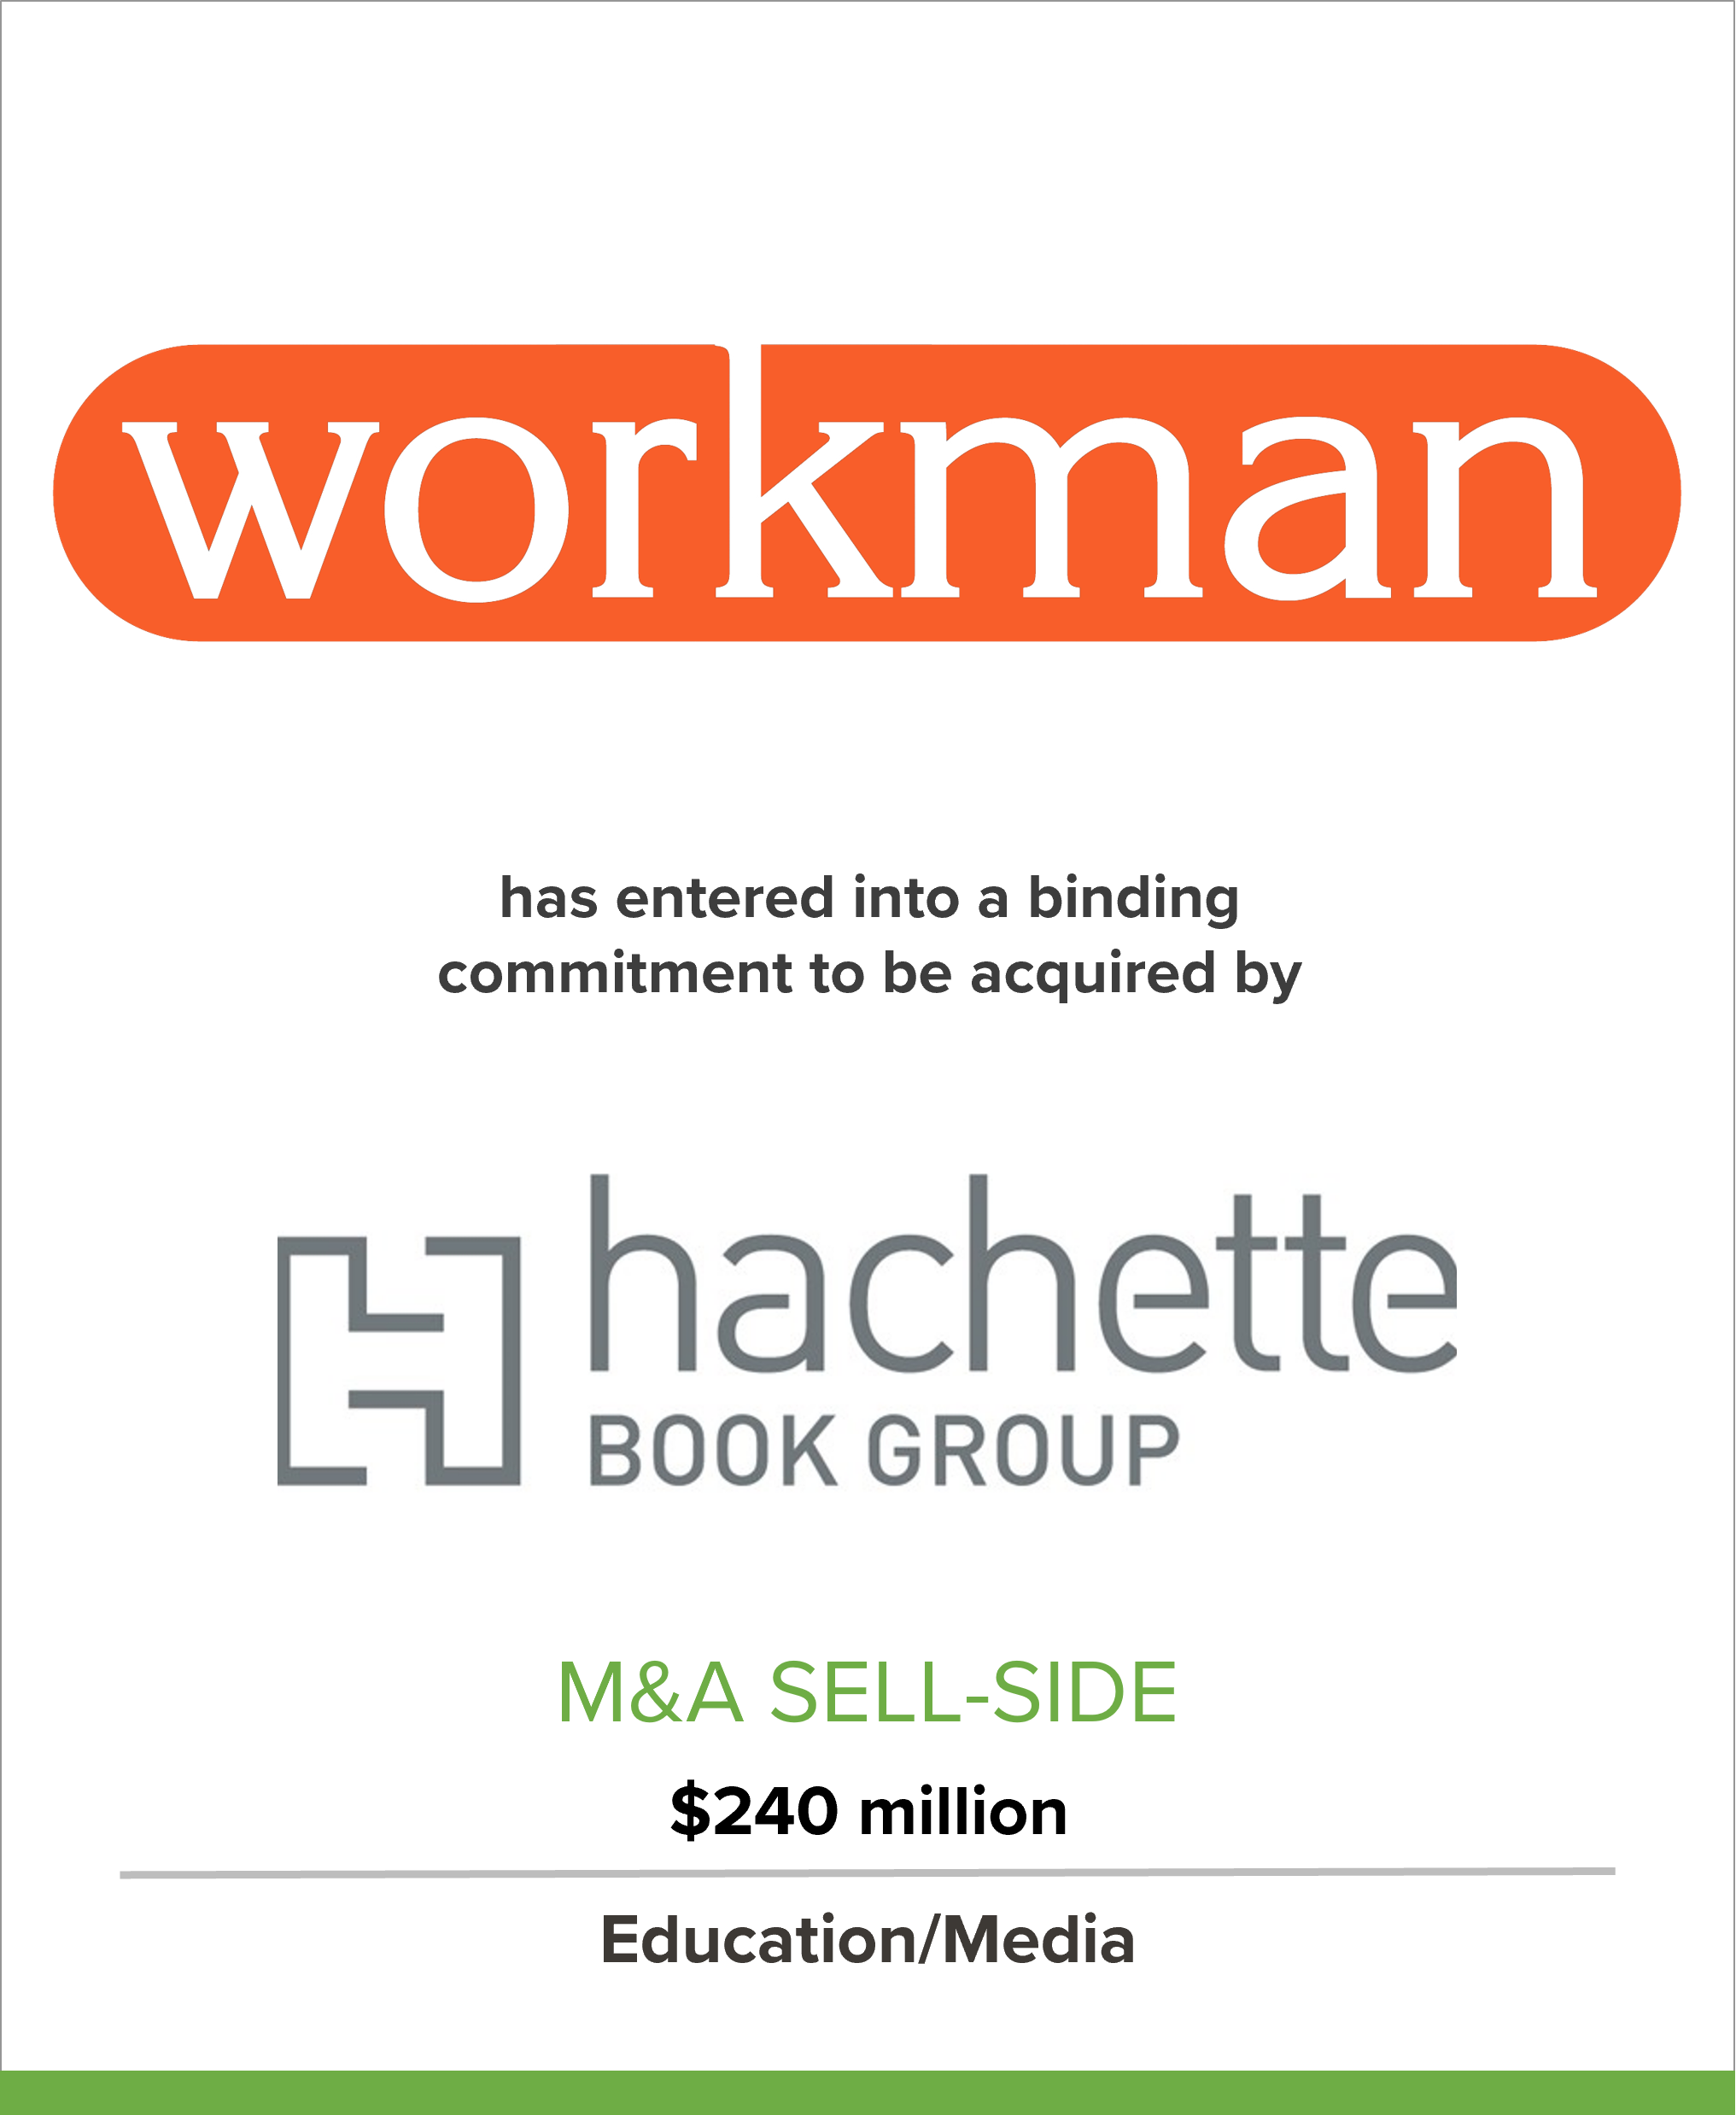 Workman Publishing to be Acquired by Hachette Book Group